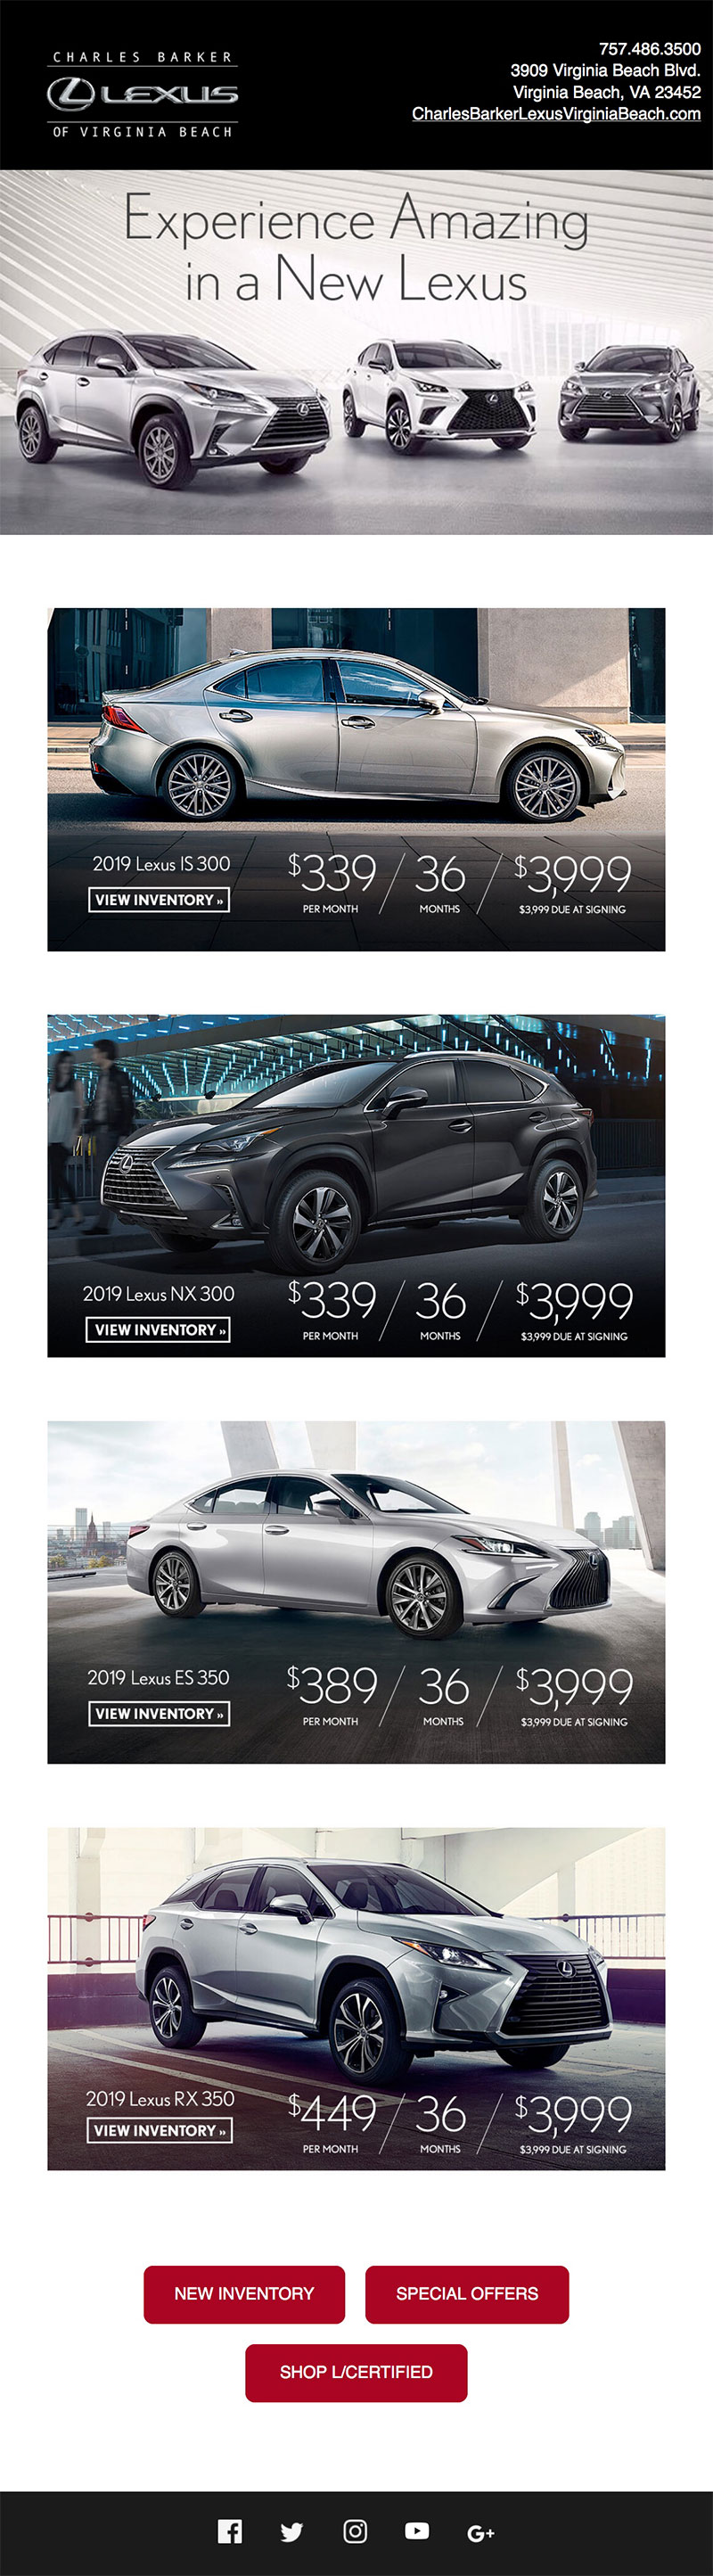 Charles Barker Lexus email